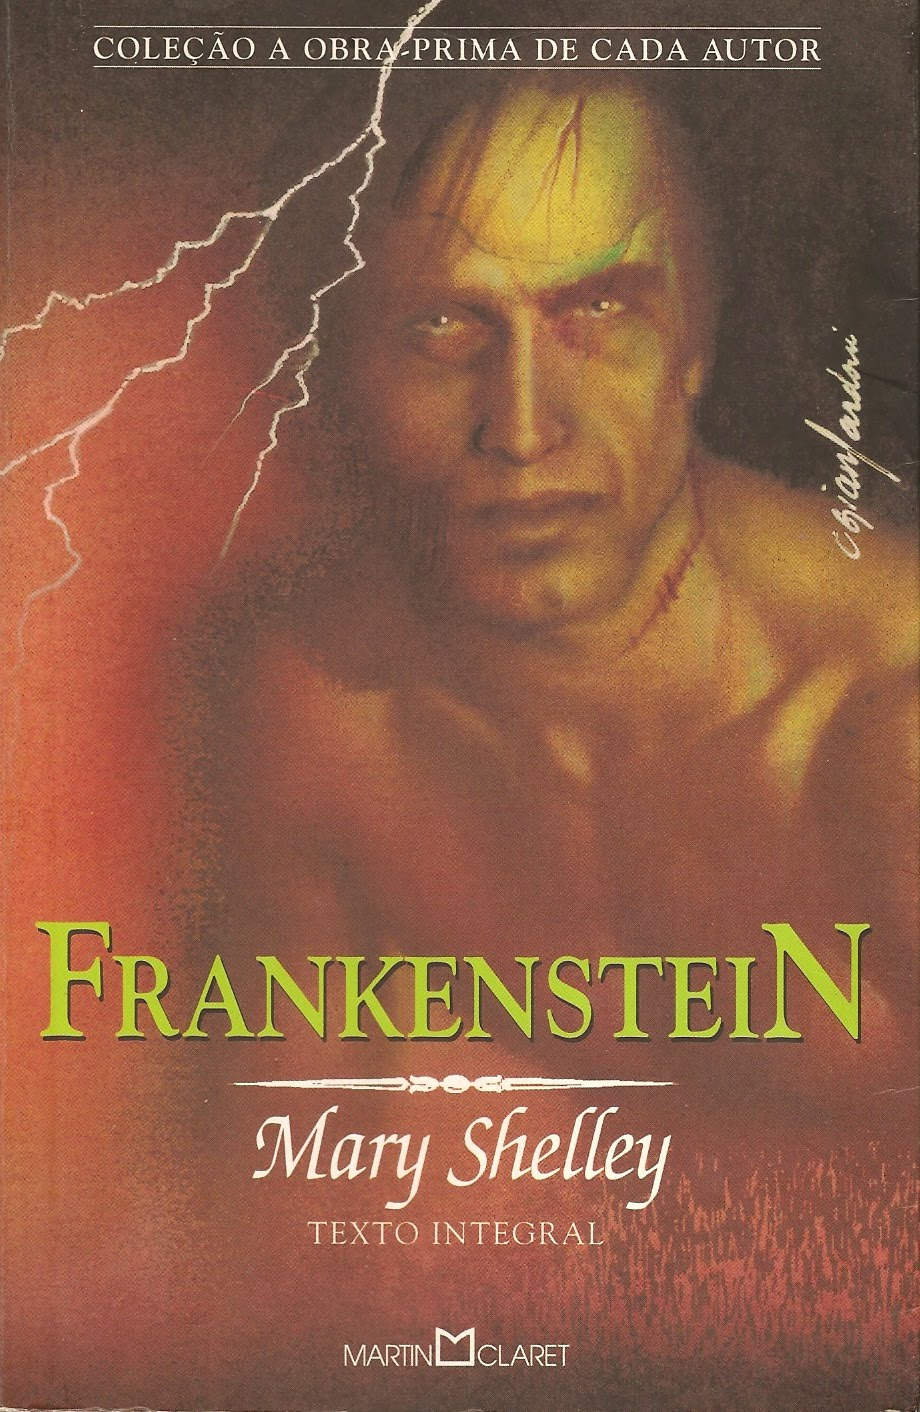 mary shelleys sympathy for frankenstein Mary shelley's gothic novel, 'frankenstein', was first published in 1818 this was at a point in time, throughout the world, there were advance changes towards the end of the 18th century, the.